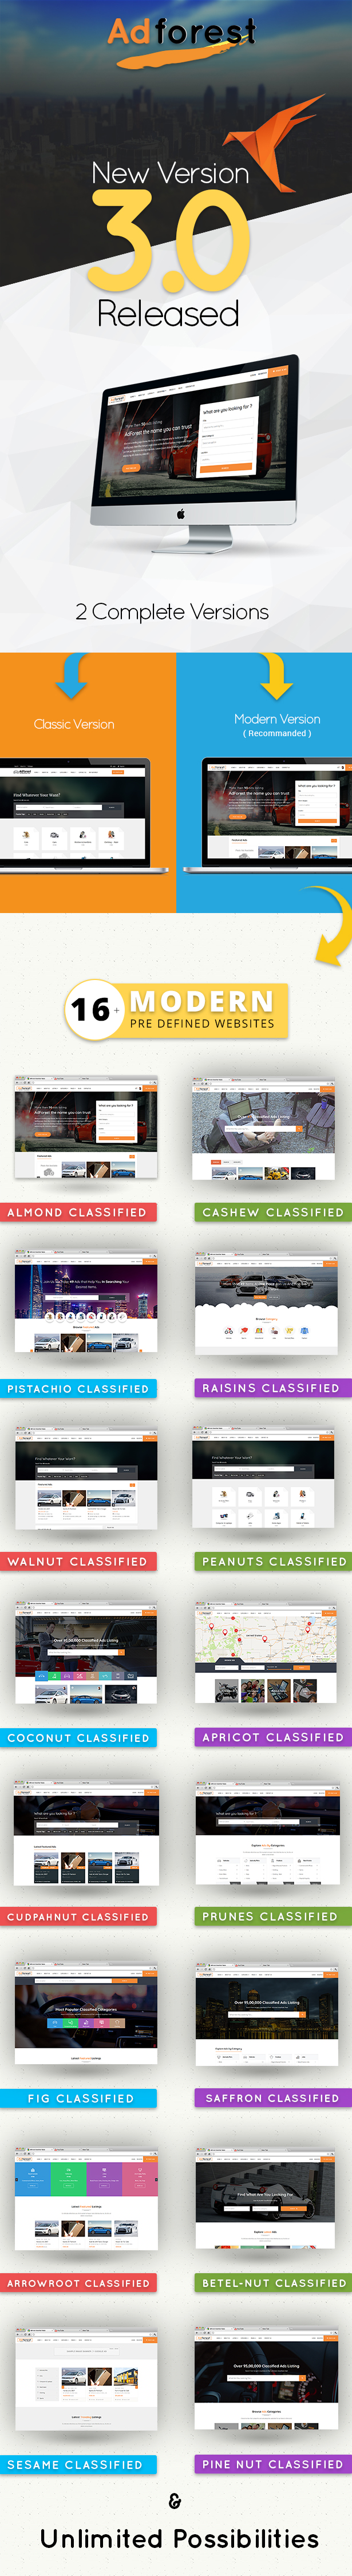 AdForest - Classified Ads WordPress Theme